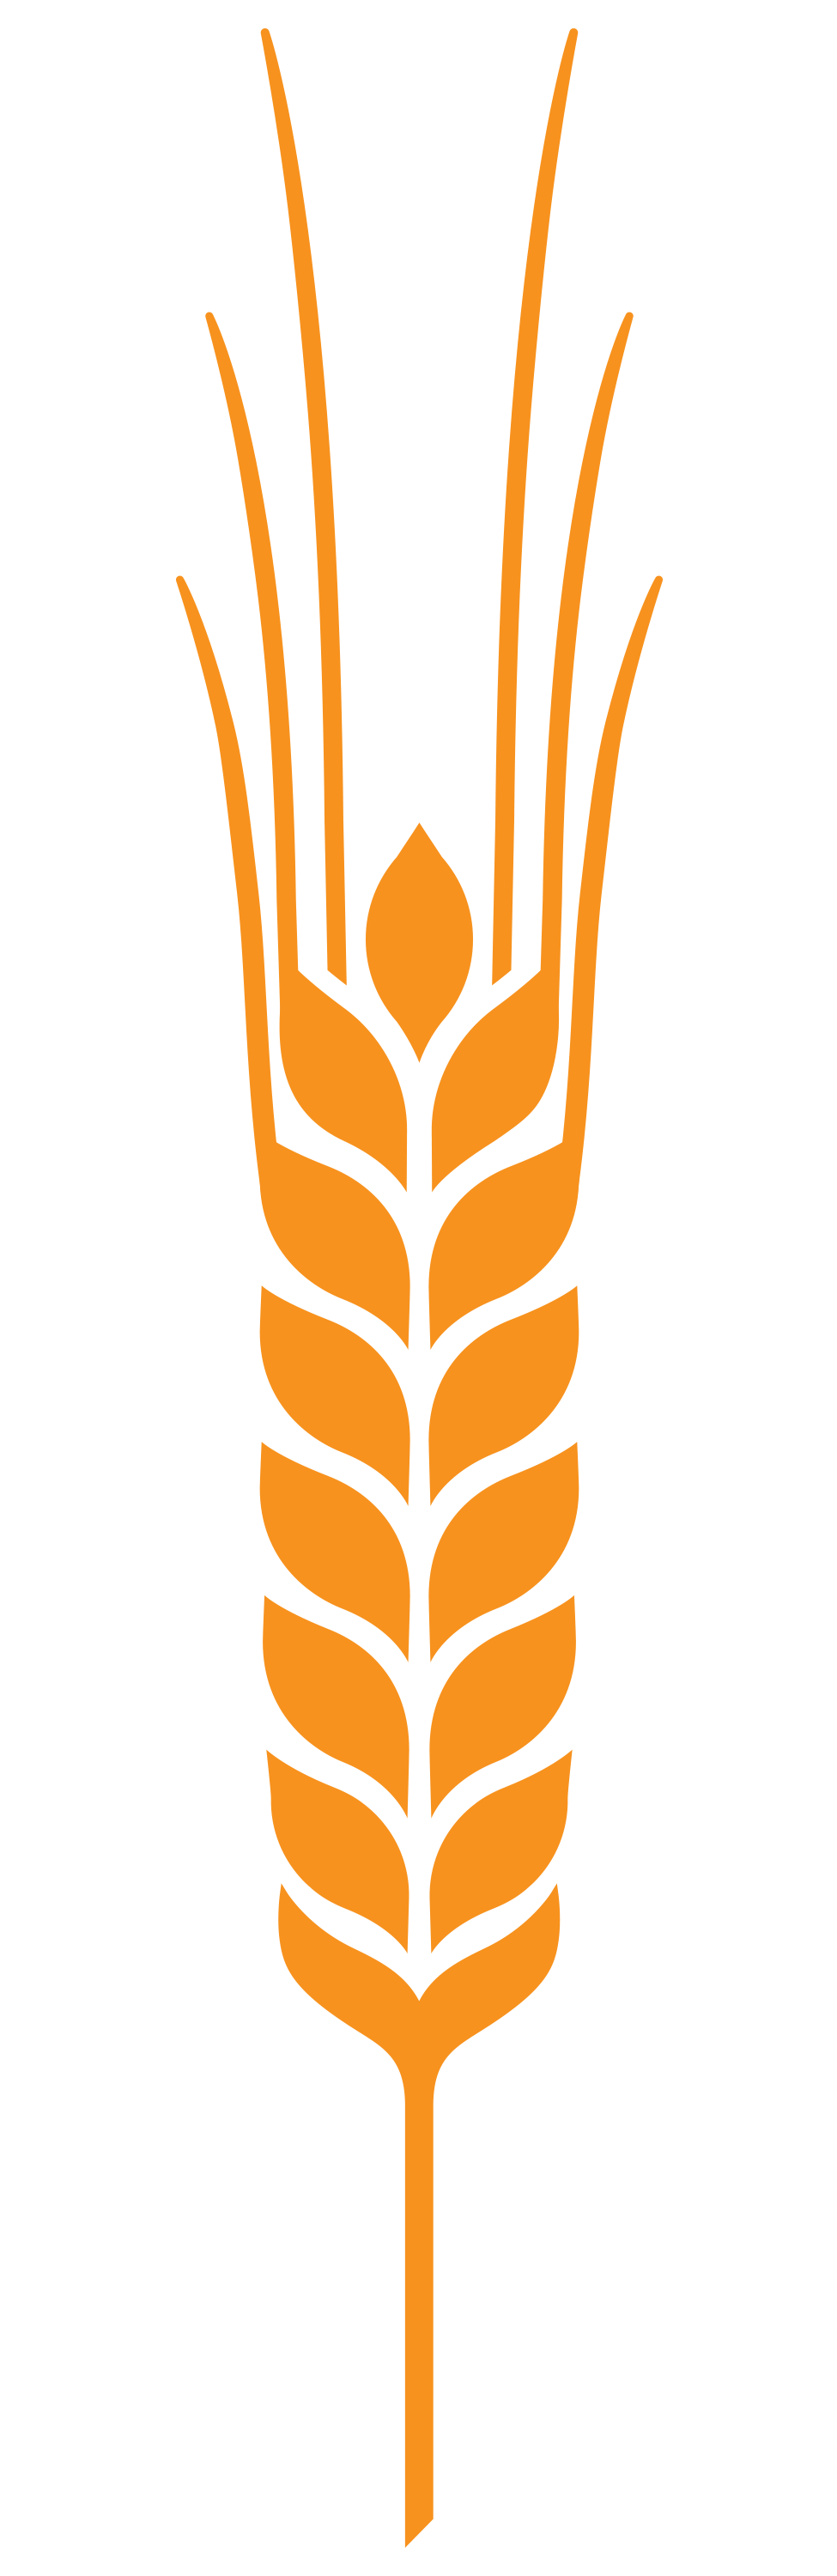 Settepani_Wheat.png